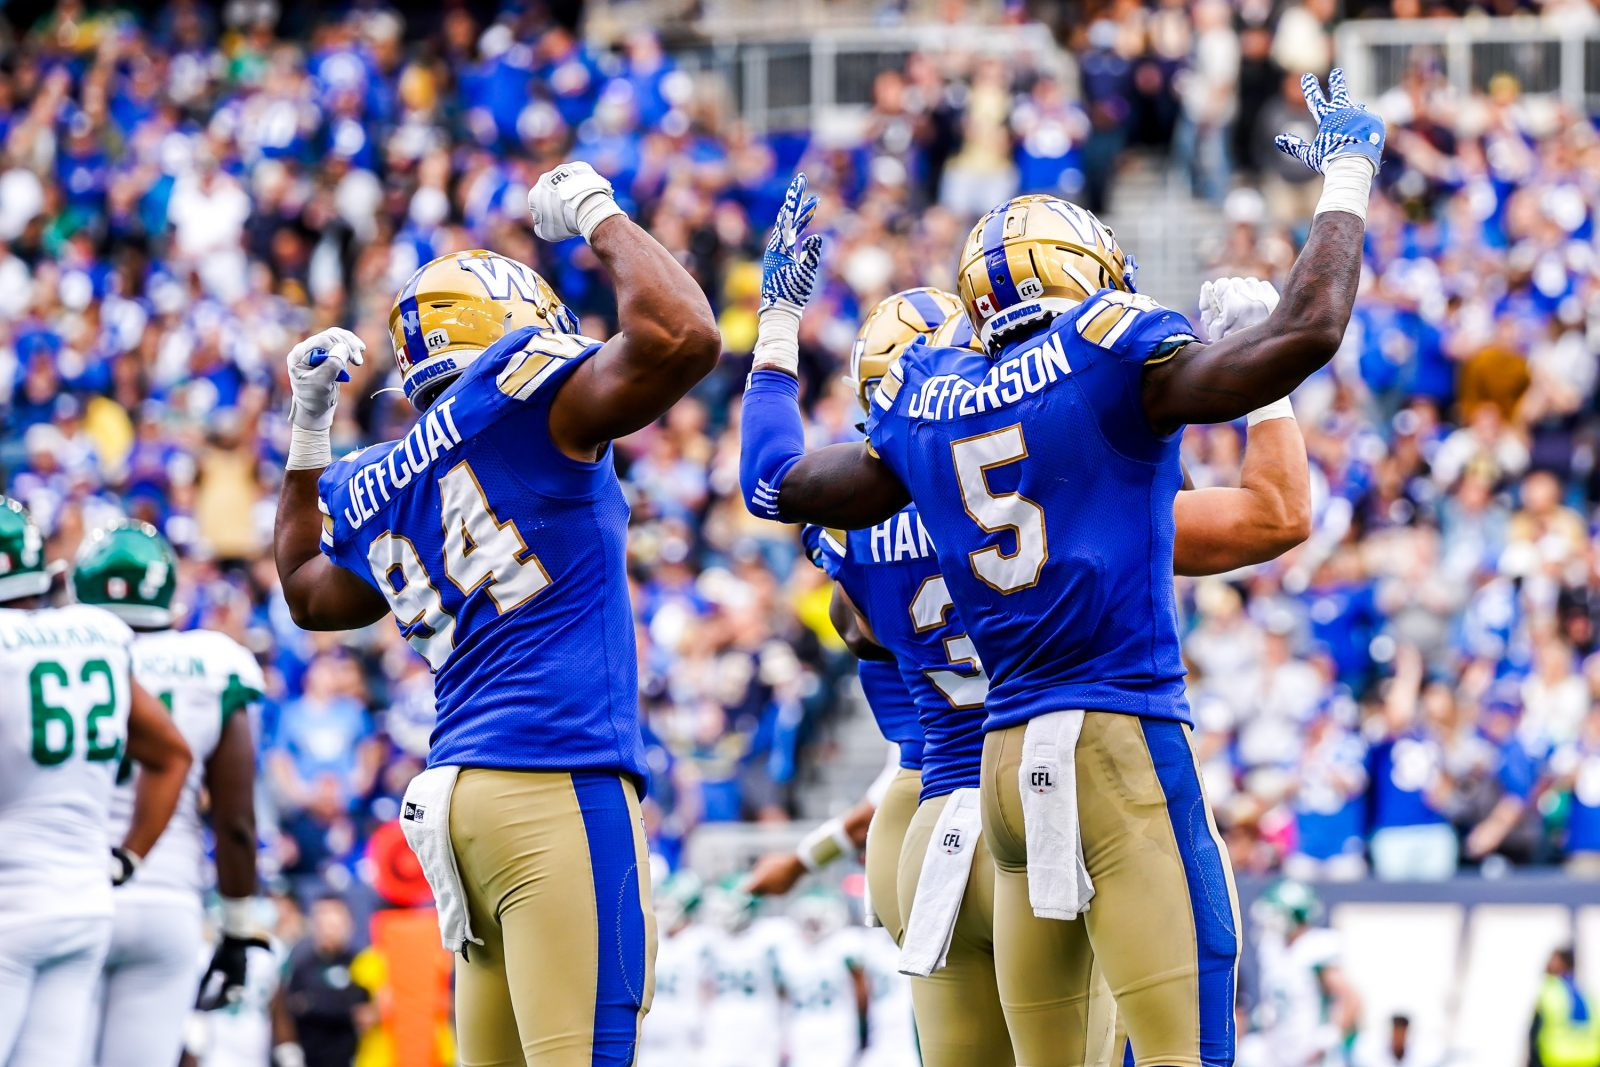 Blue Bombers blow Roughriders away in Banjo Bowl